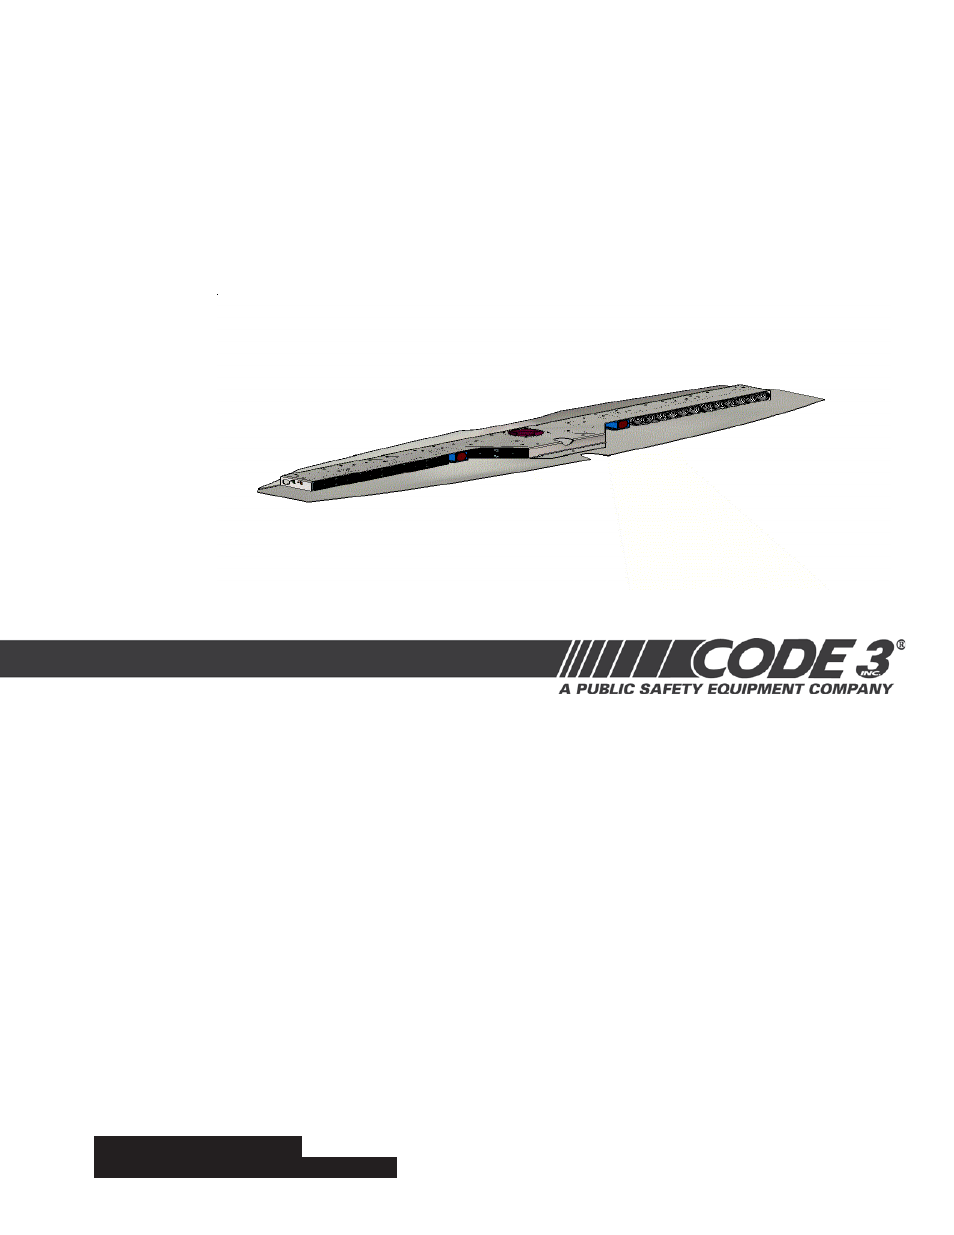 Traffic Buster Code 3 Wiring Diagram 36 Images Supervisor Tl For Chevy Impala Page1